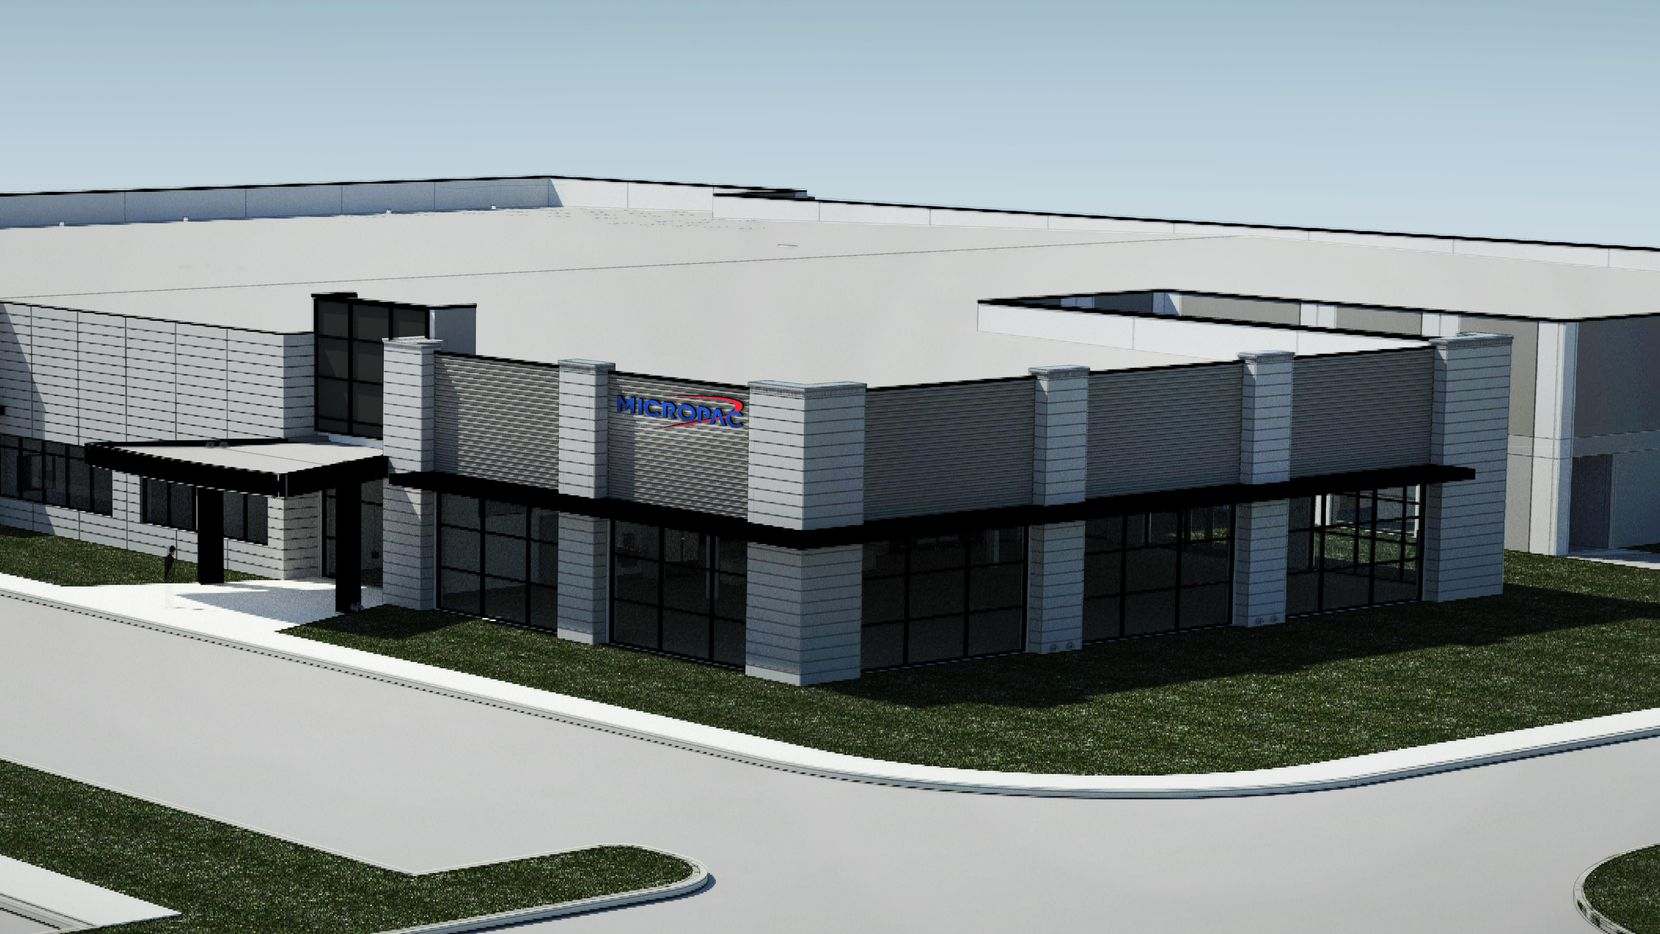 Micropac will build a new headquarters and manufacturing facility in Garland, where it has operated since 1963.